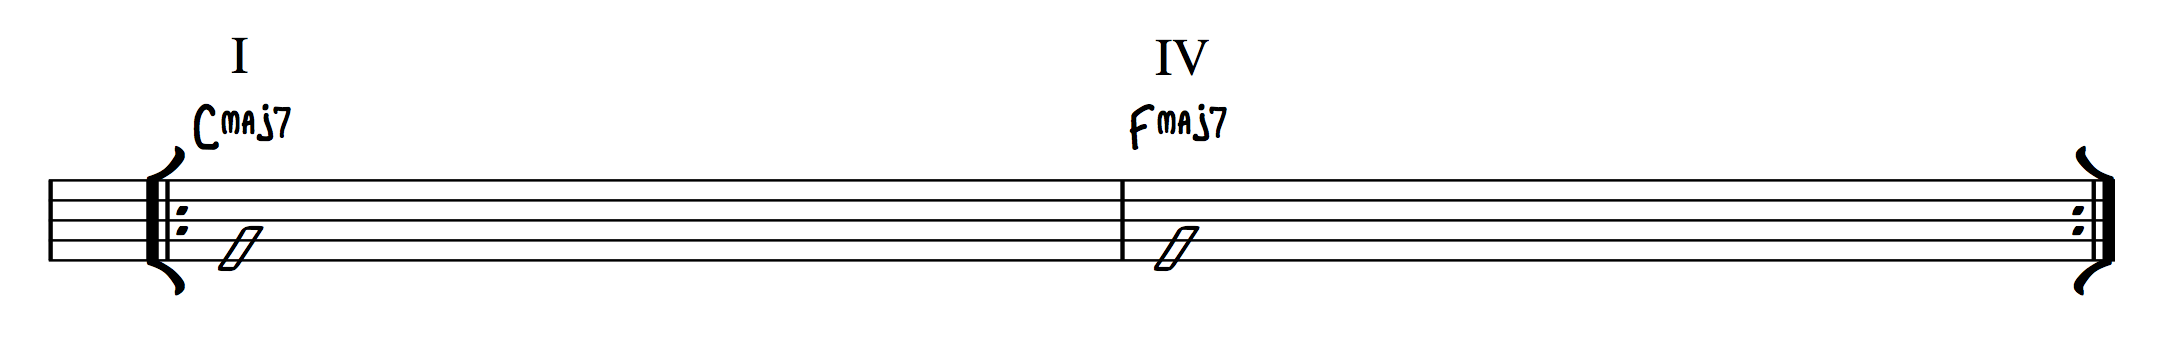 Chord Exercise 2 Chord Functions